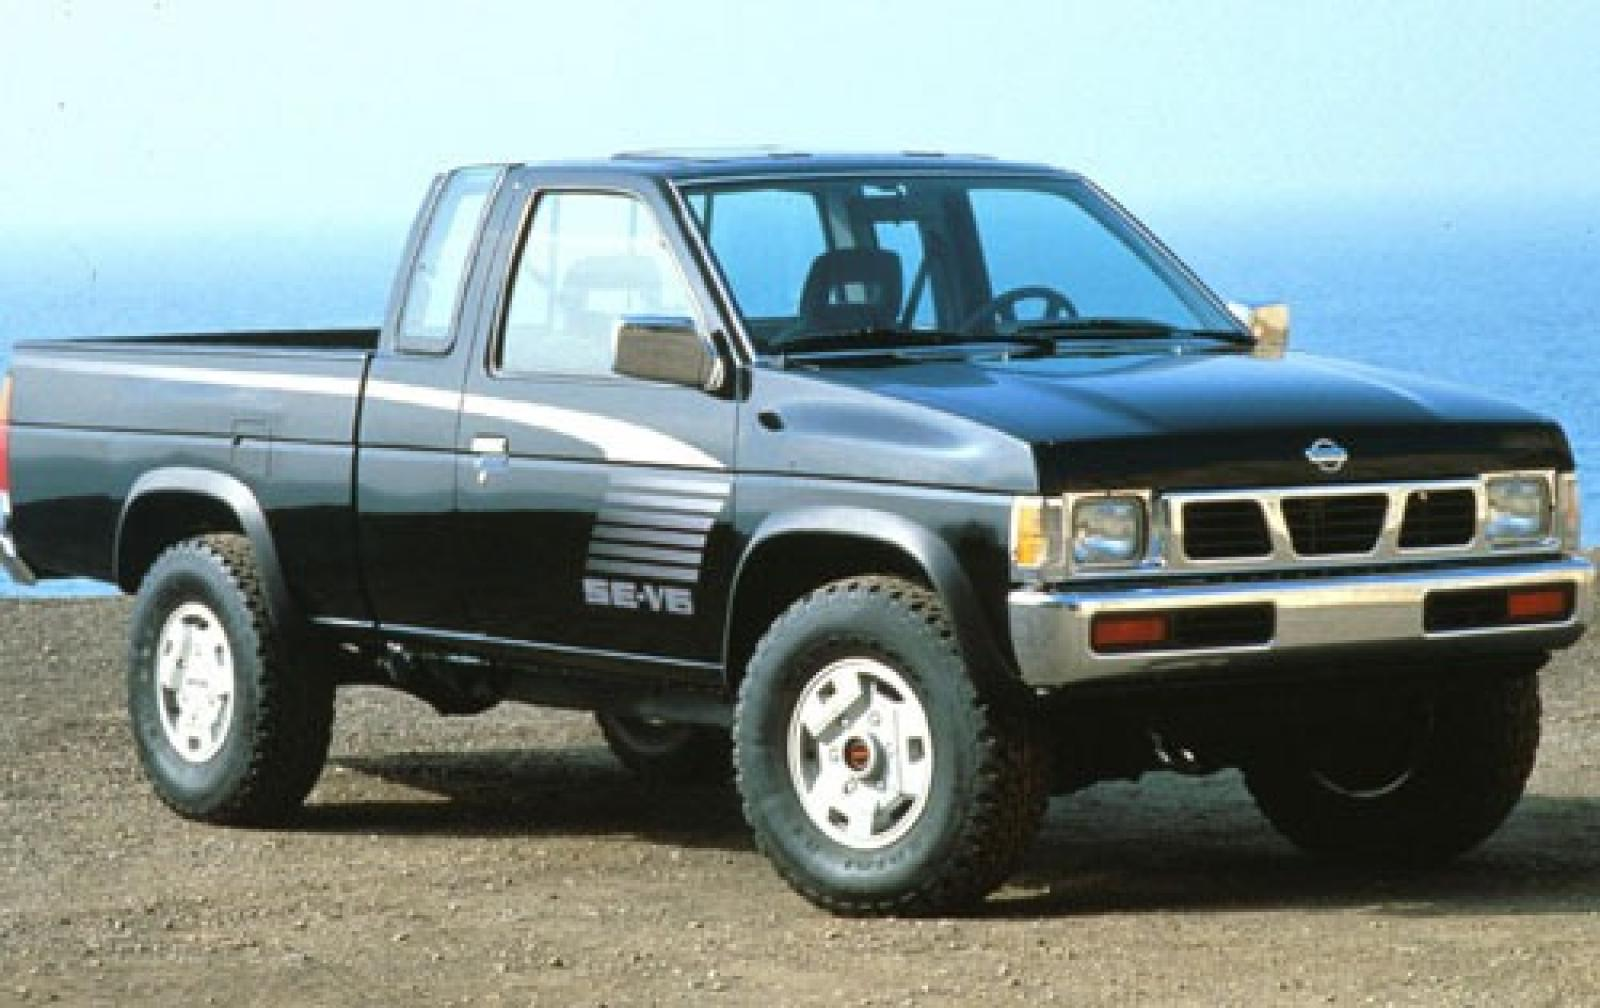 1990 nissan truck information and photos zombiedrive. Black Bedroom Furniture Sets. Home Design Ideas